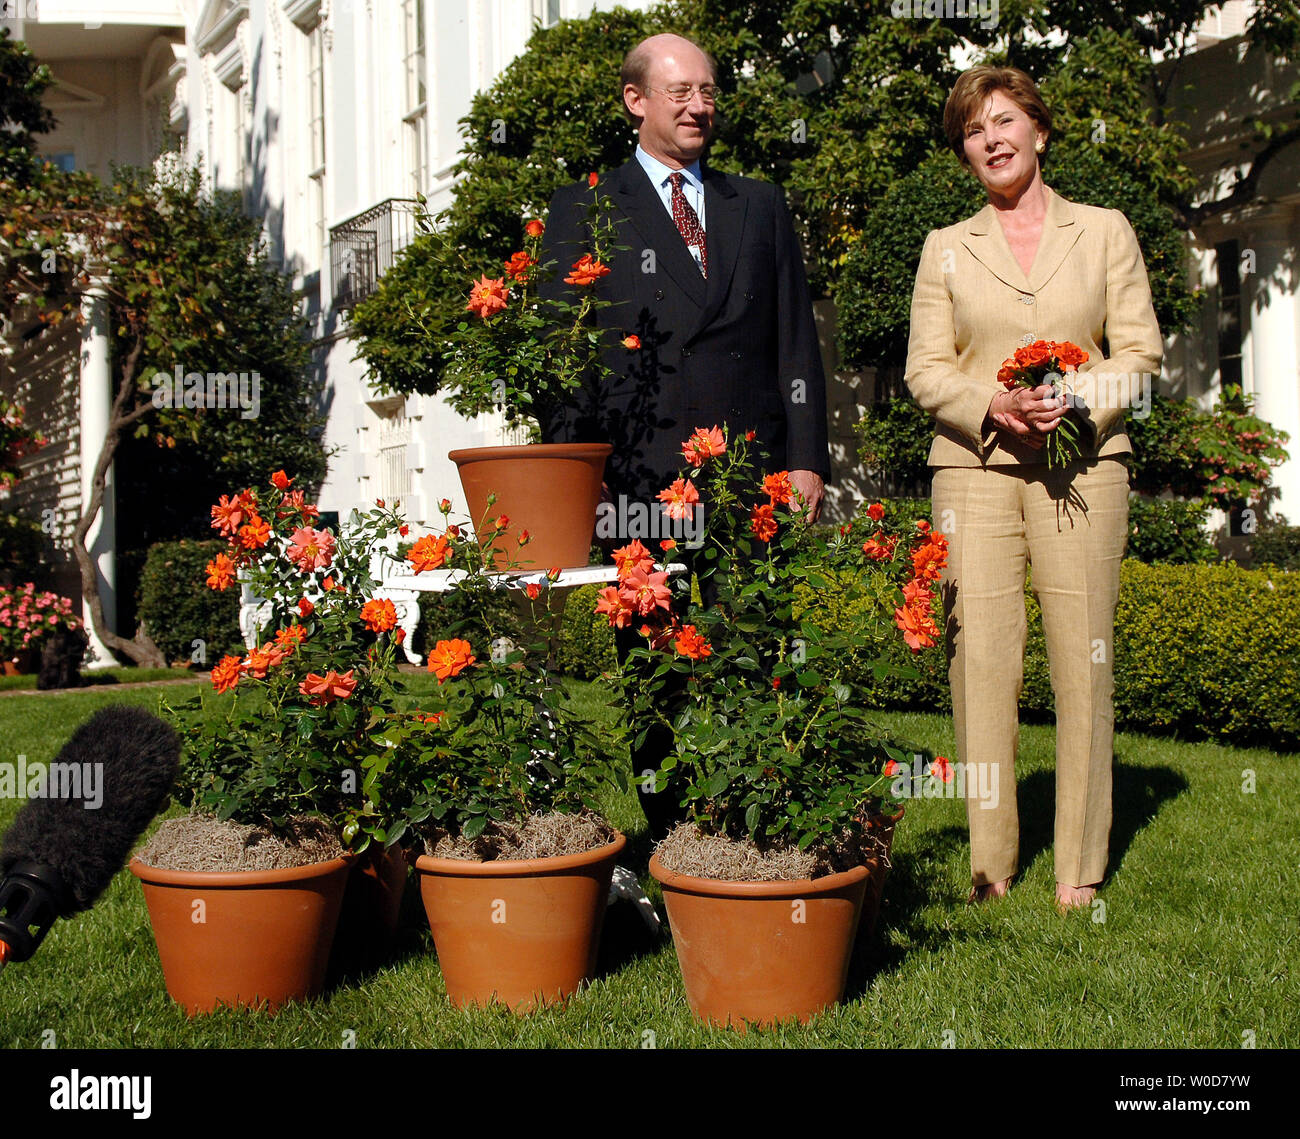 First Lady Laura Bush (R) and Harry and David CEO Bill Williams